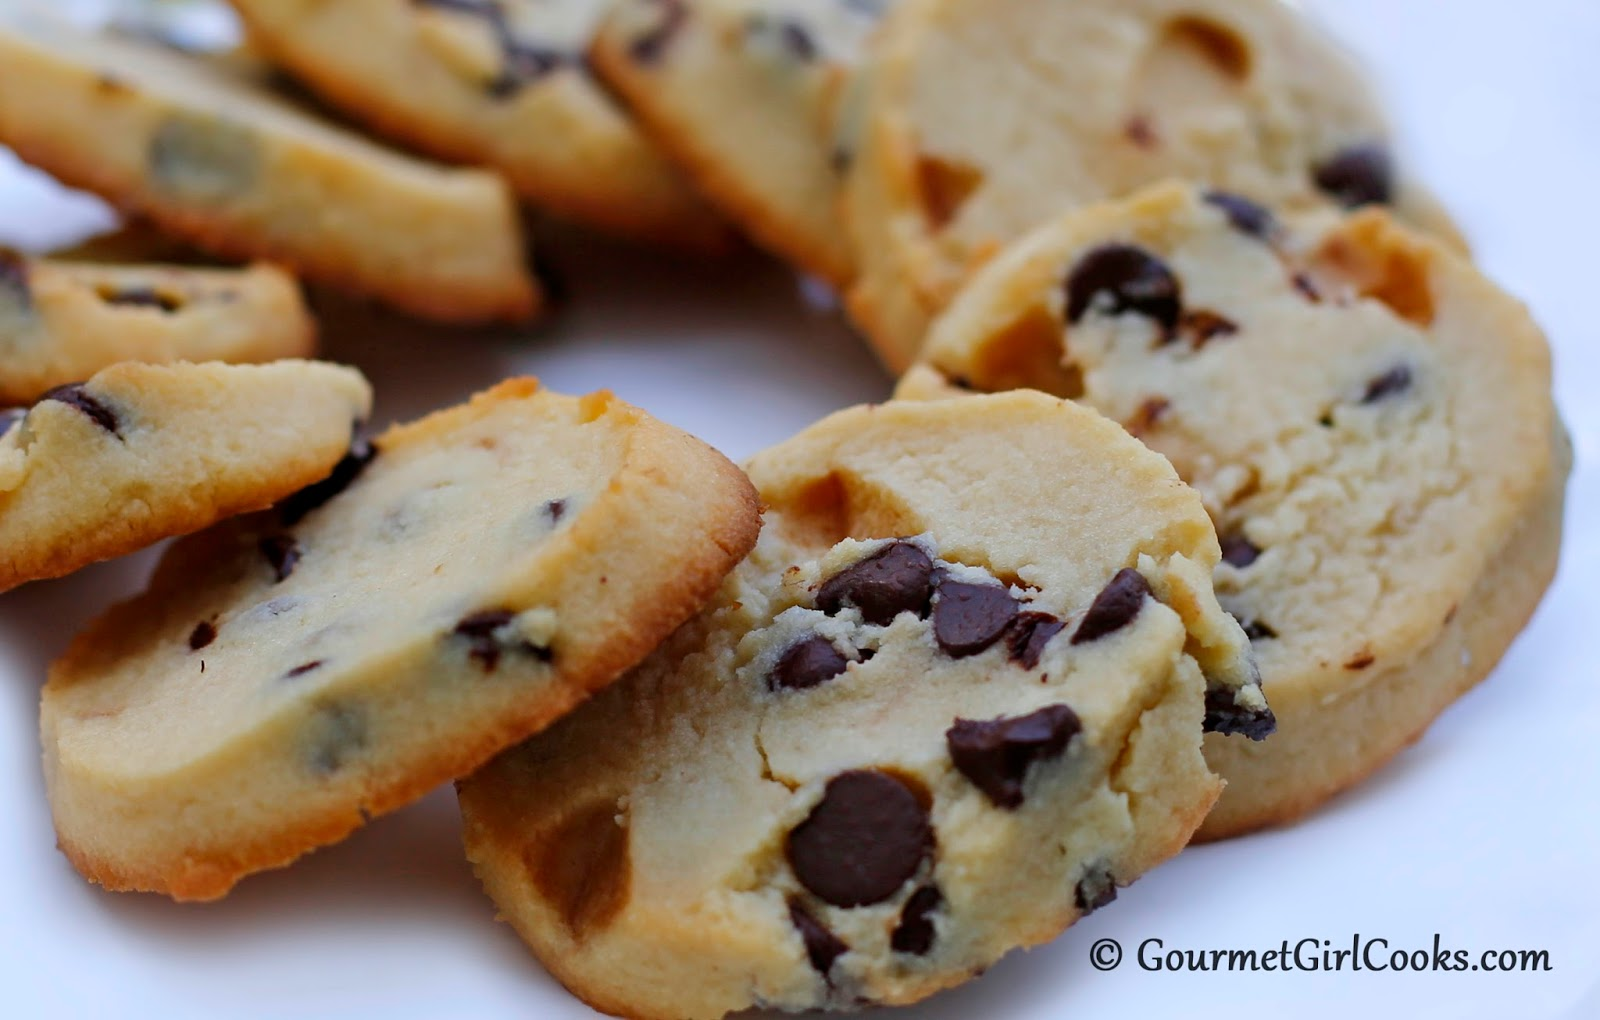 Chocolate Chip Shortbread Cookies - Low Carb & Gluten Free